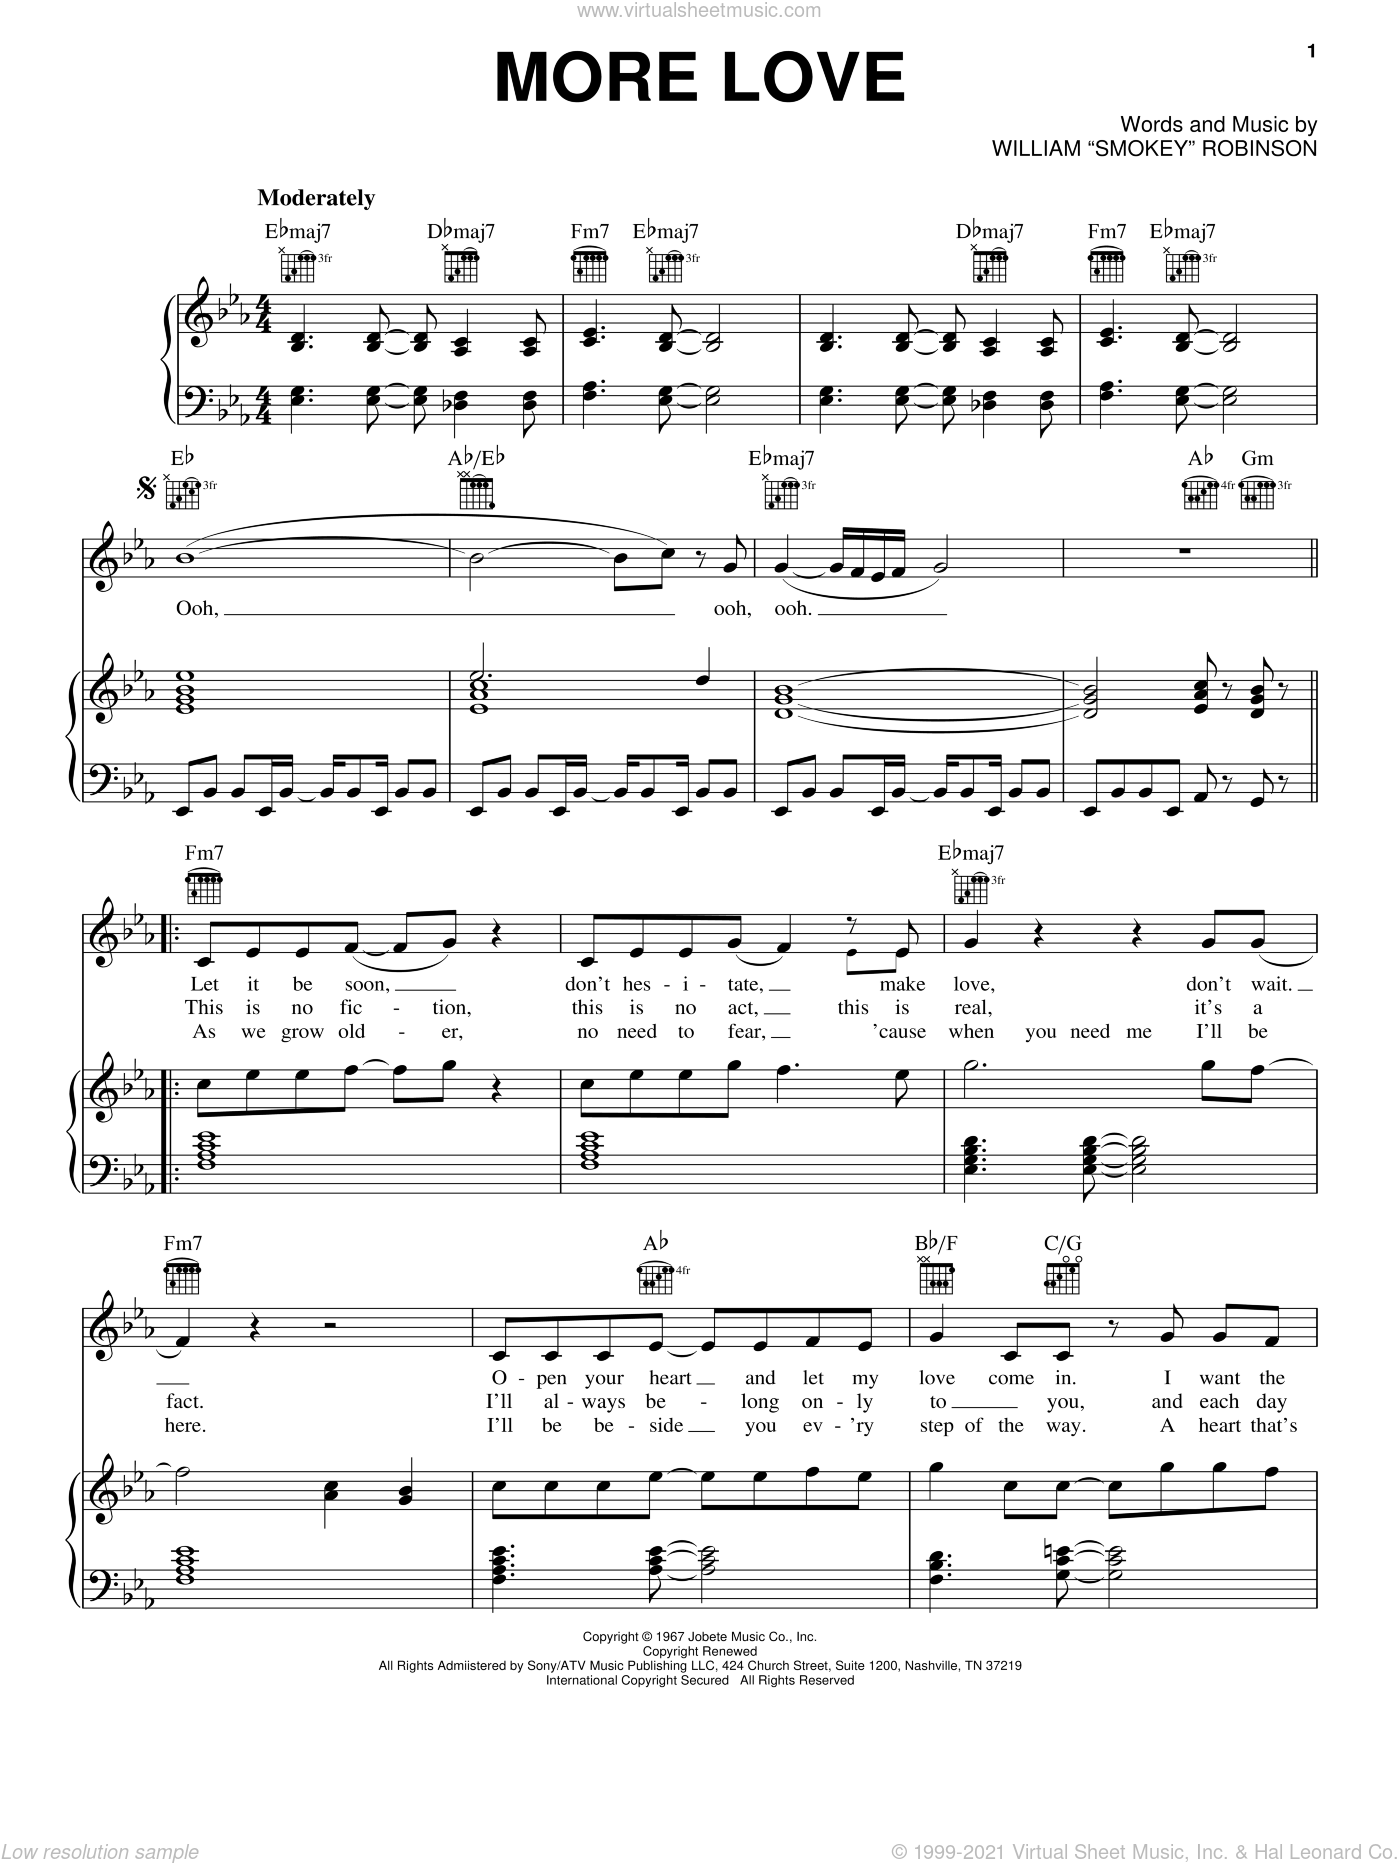 More Love sheet music for voice, piano or guitar by William 'Smokey' Robinson, intermediate skill level